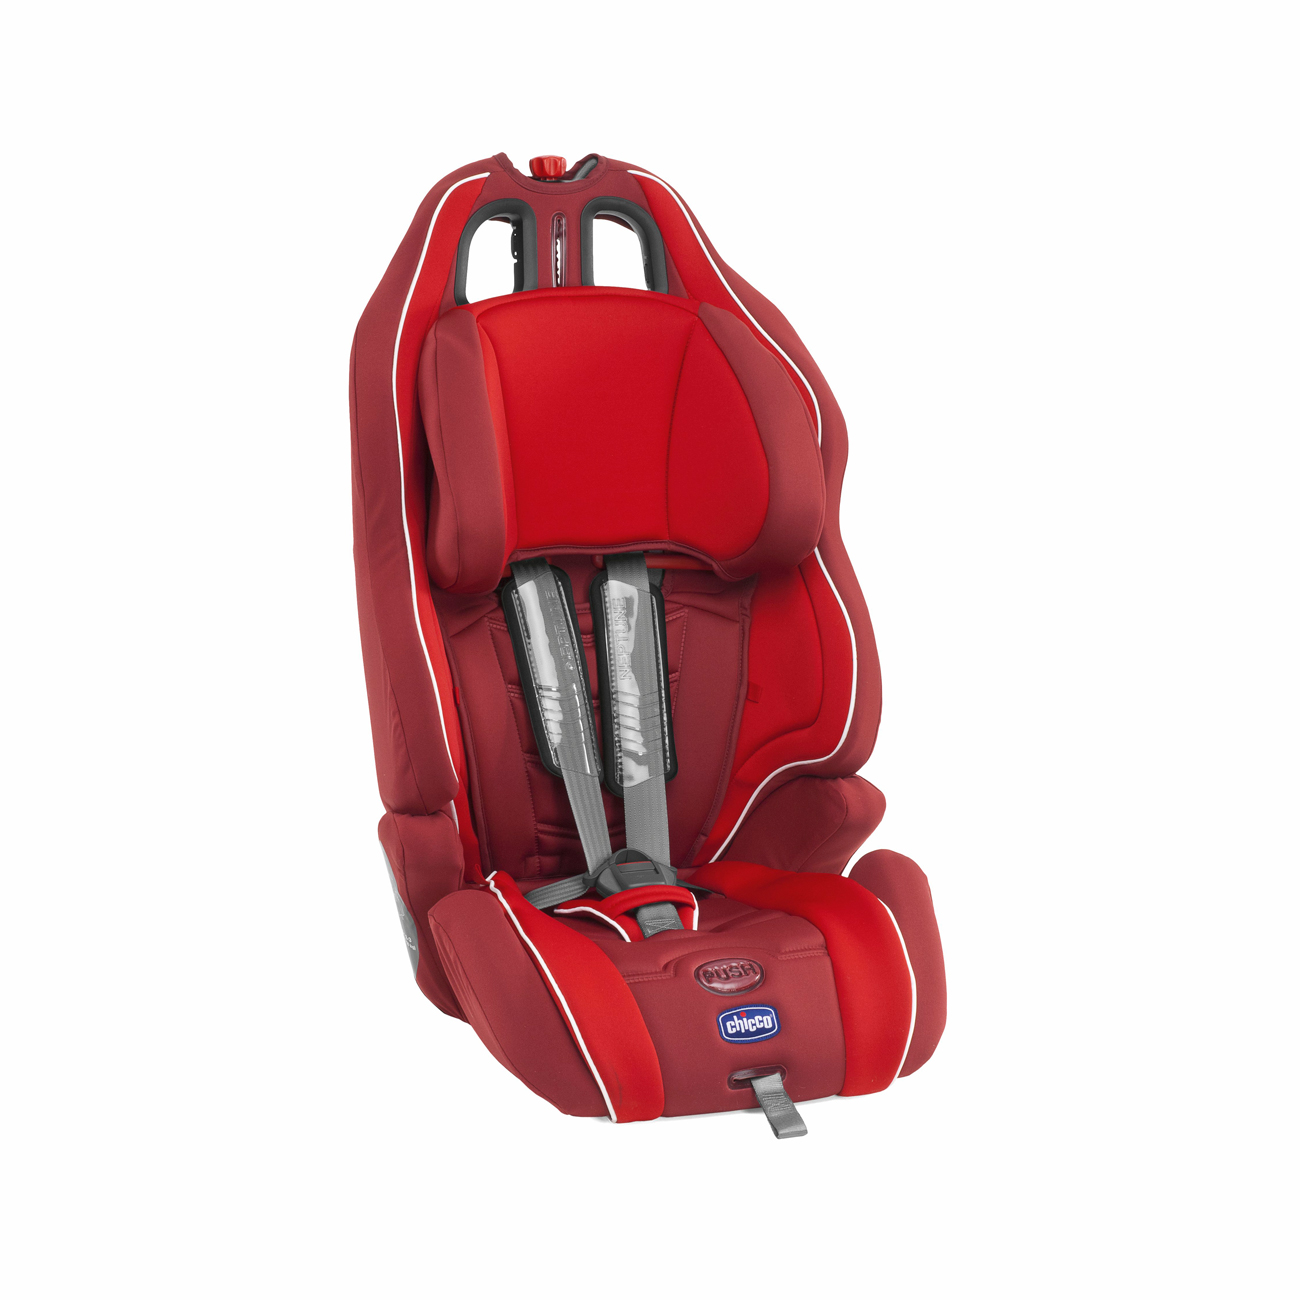 autokindersitz autositz kinderautositz gruppe 1 2 3 kg 9 36 chicco neptune red ebay. Black Bedroom Furniture Sets. Home Design Ideas